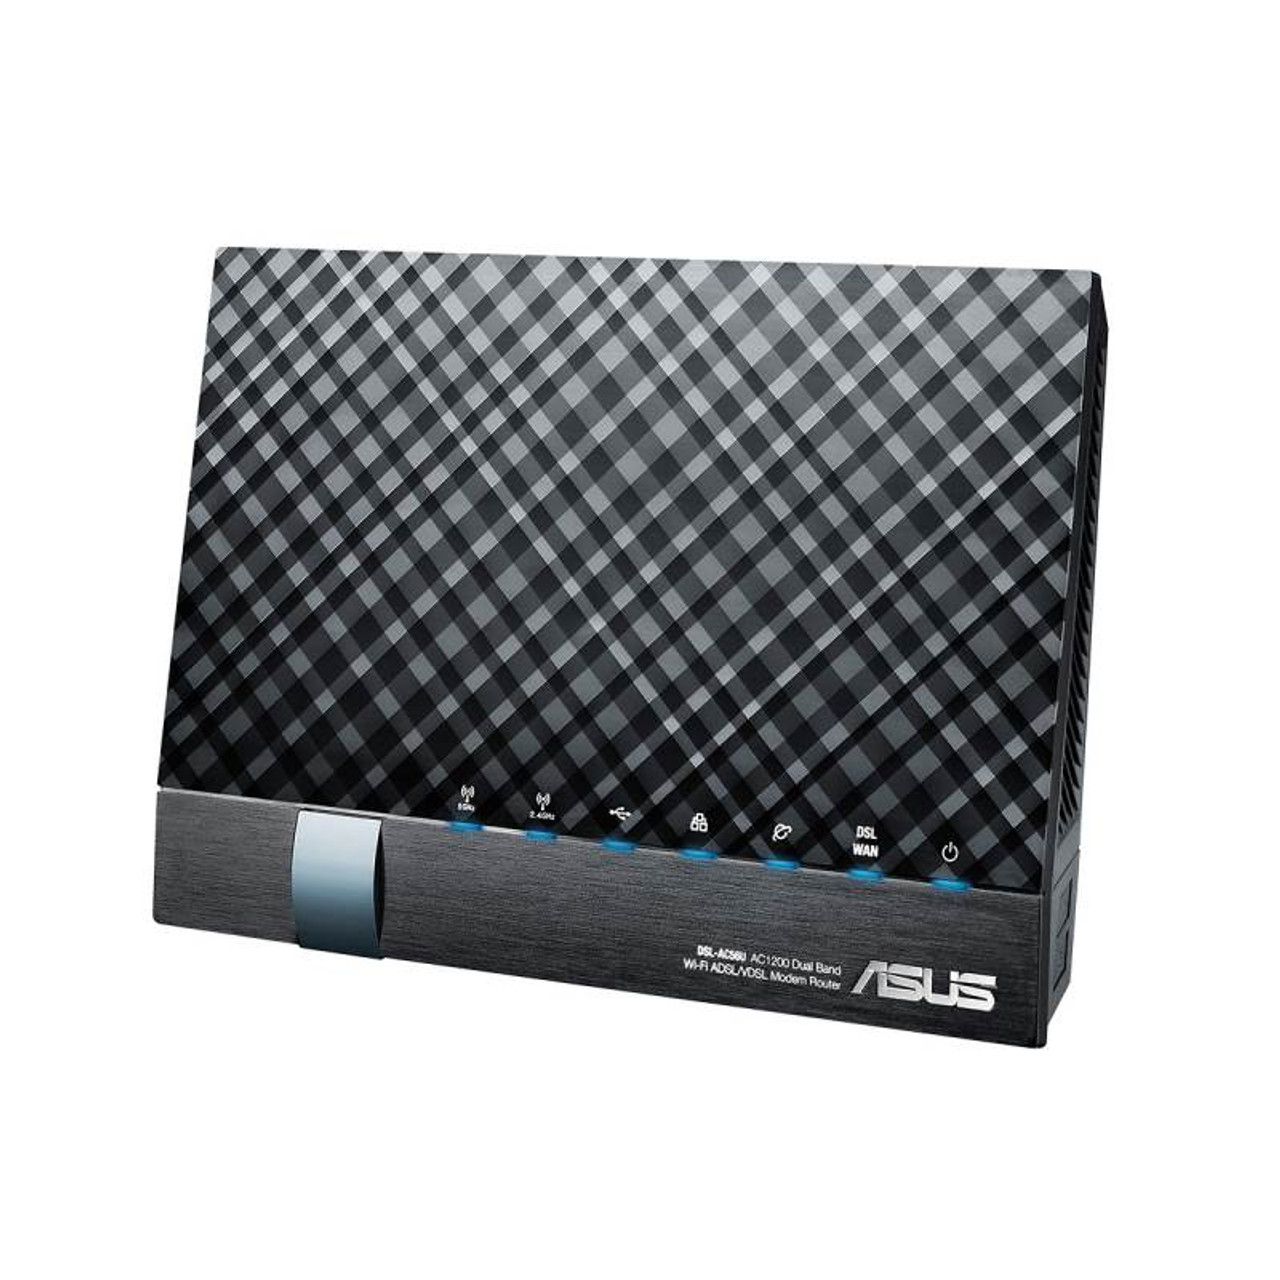 Product image for Asus DSL-AC56U AC1200 Dual Band 802.11ac VDSL/ADSL Wireless Modem Router - NBN | CX Computer Superstore